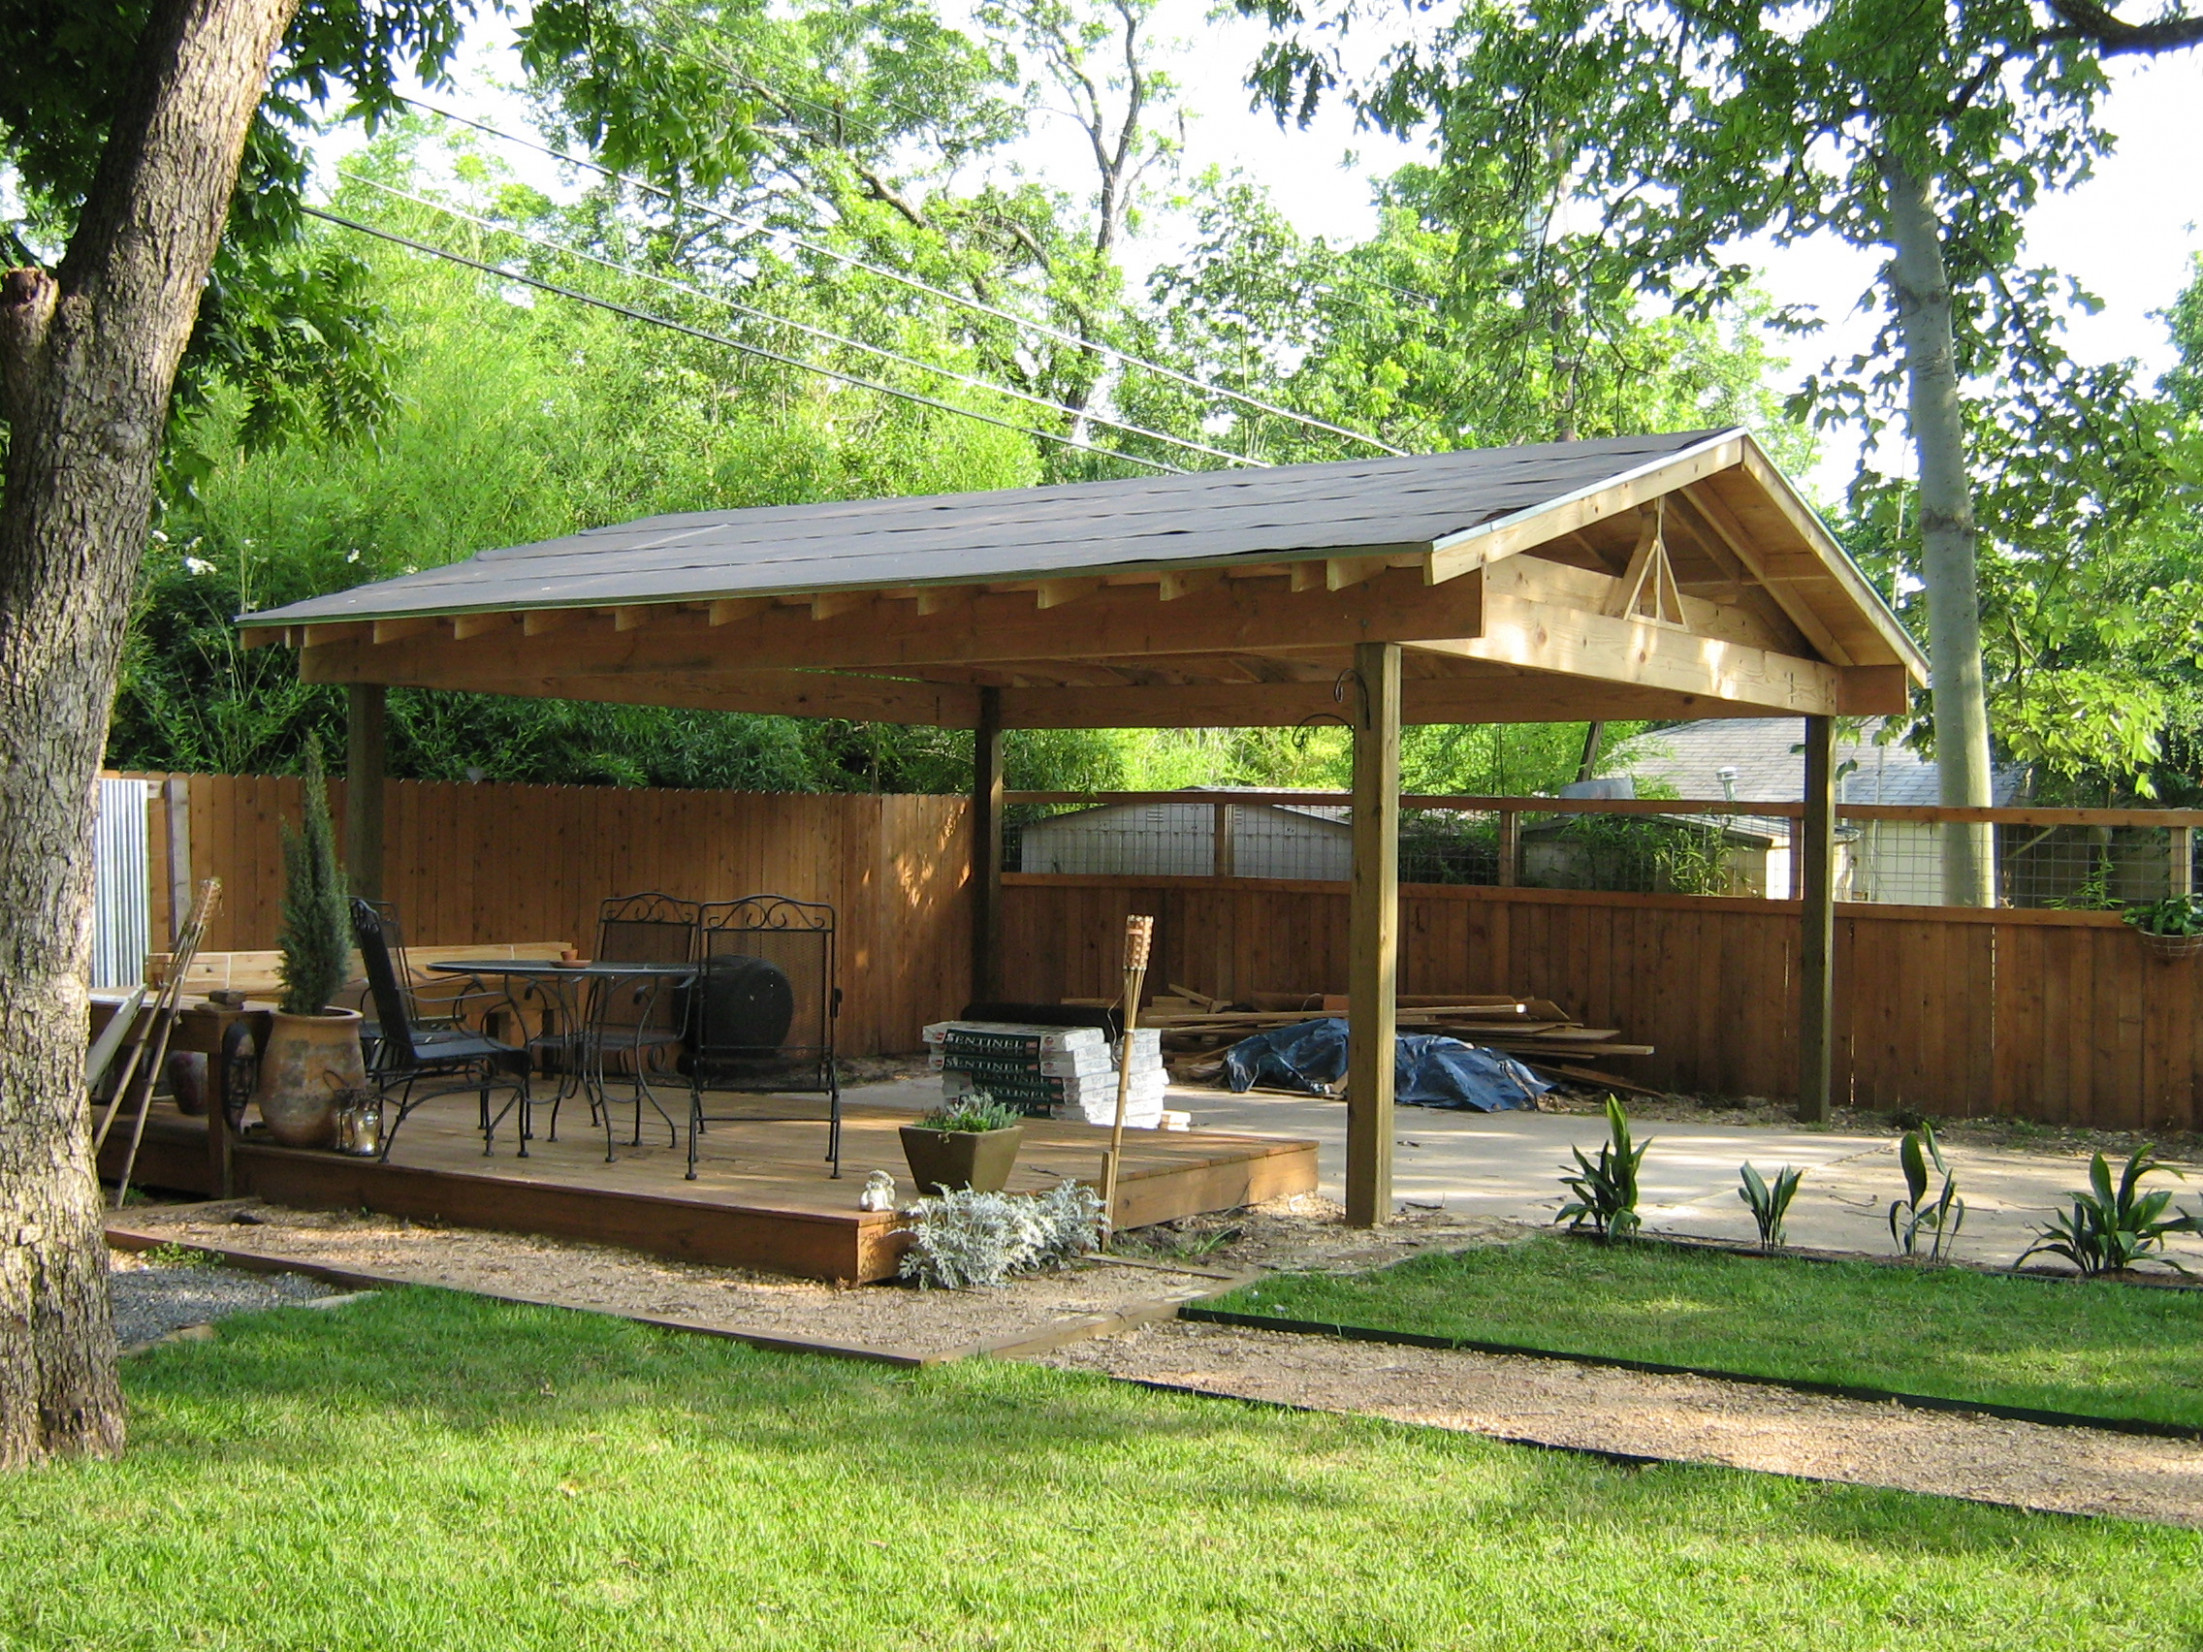 Wood Carports Country Home Design Ideas 3 Car Wooden Carports